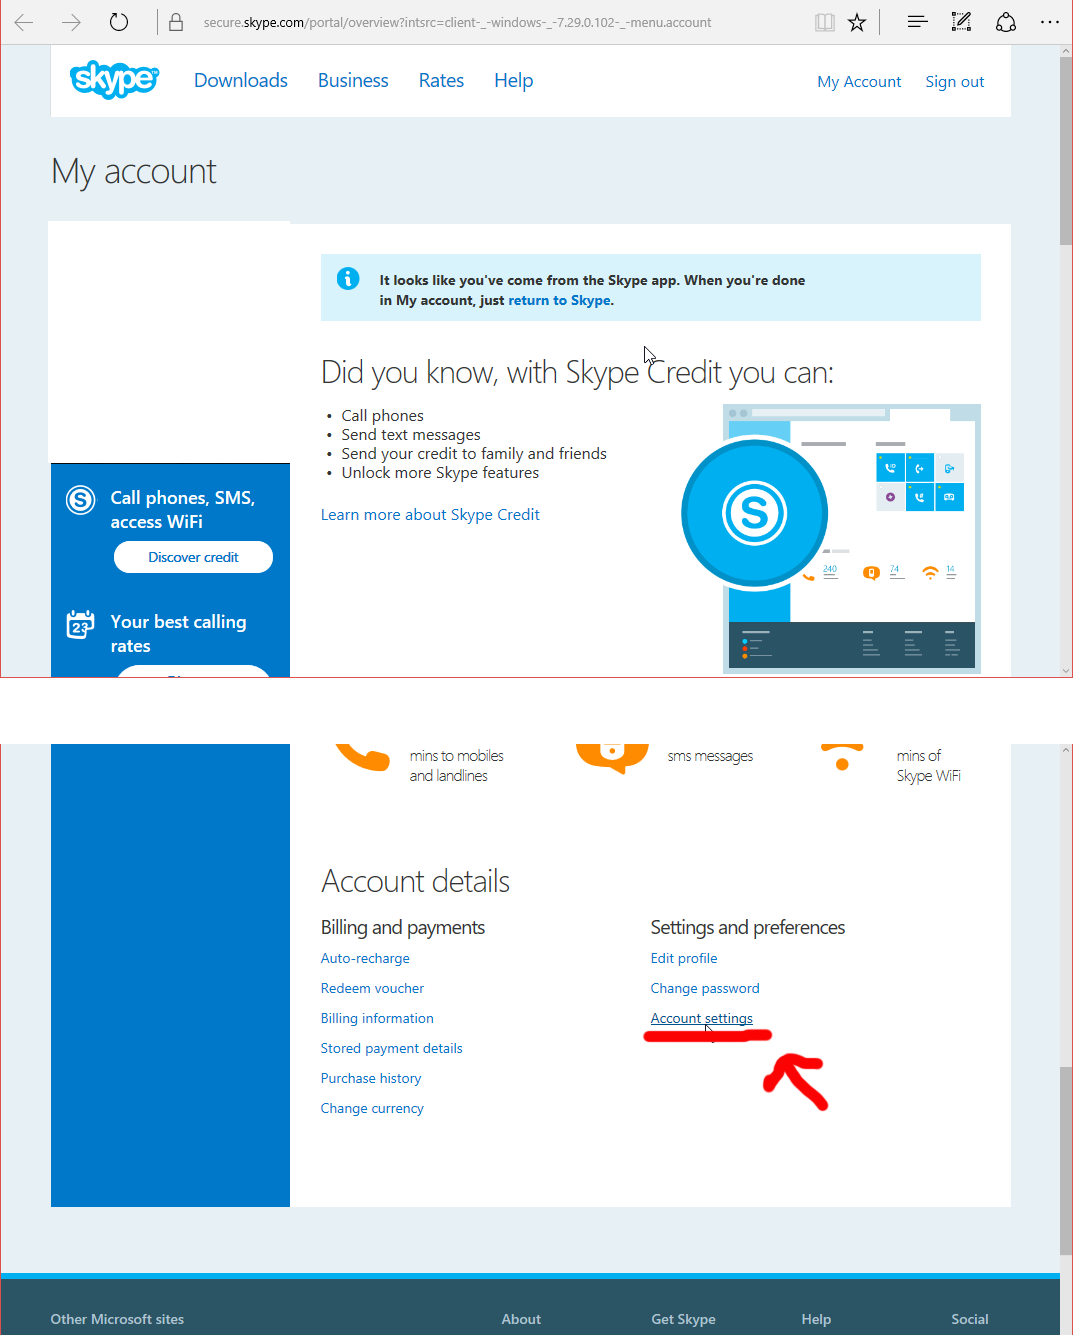 Skype login account - There Is No Login History Device List Or Anything That Would Resemble Modern Tools To Audit Your Own Account In The Traditional Skype